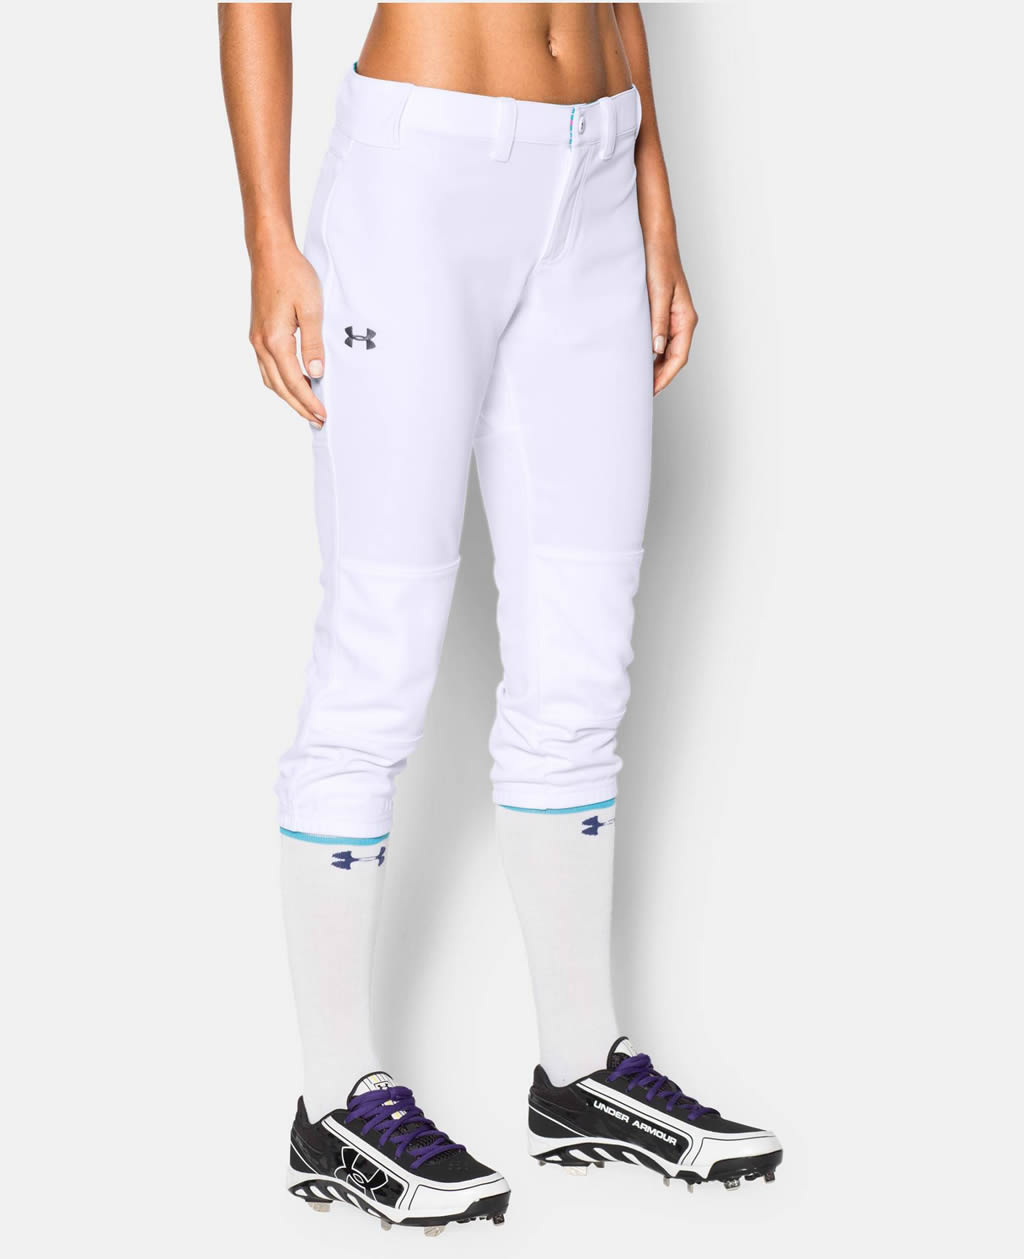 White Women's Strike Zone Pant By Under Armour